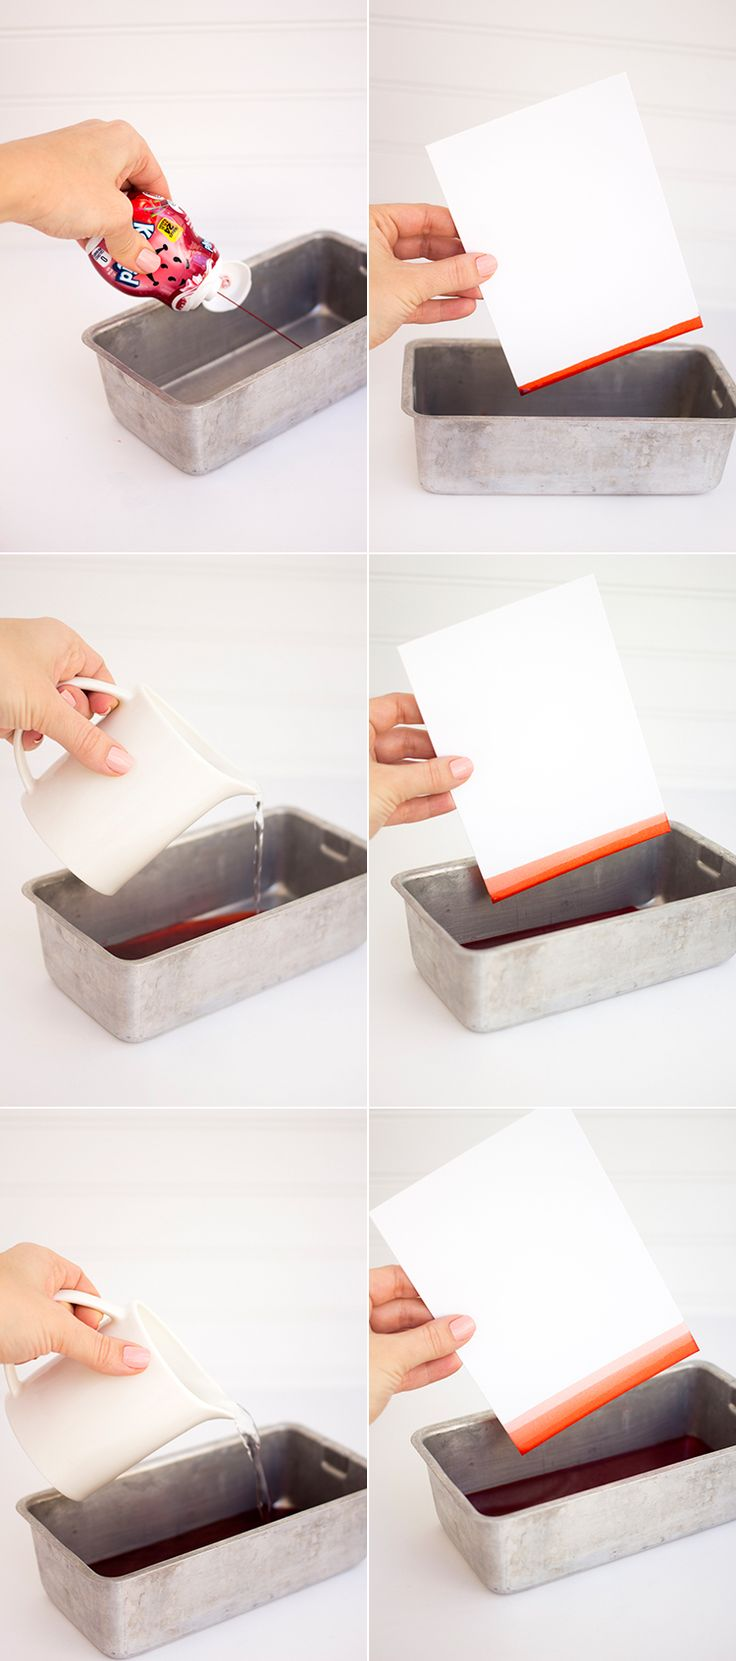 Kool Aid Dipped Stationary, for a #DIY that's totally... kool. #forgiveus